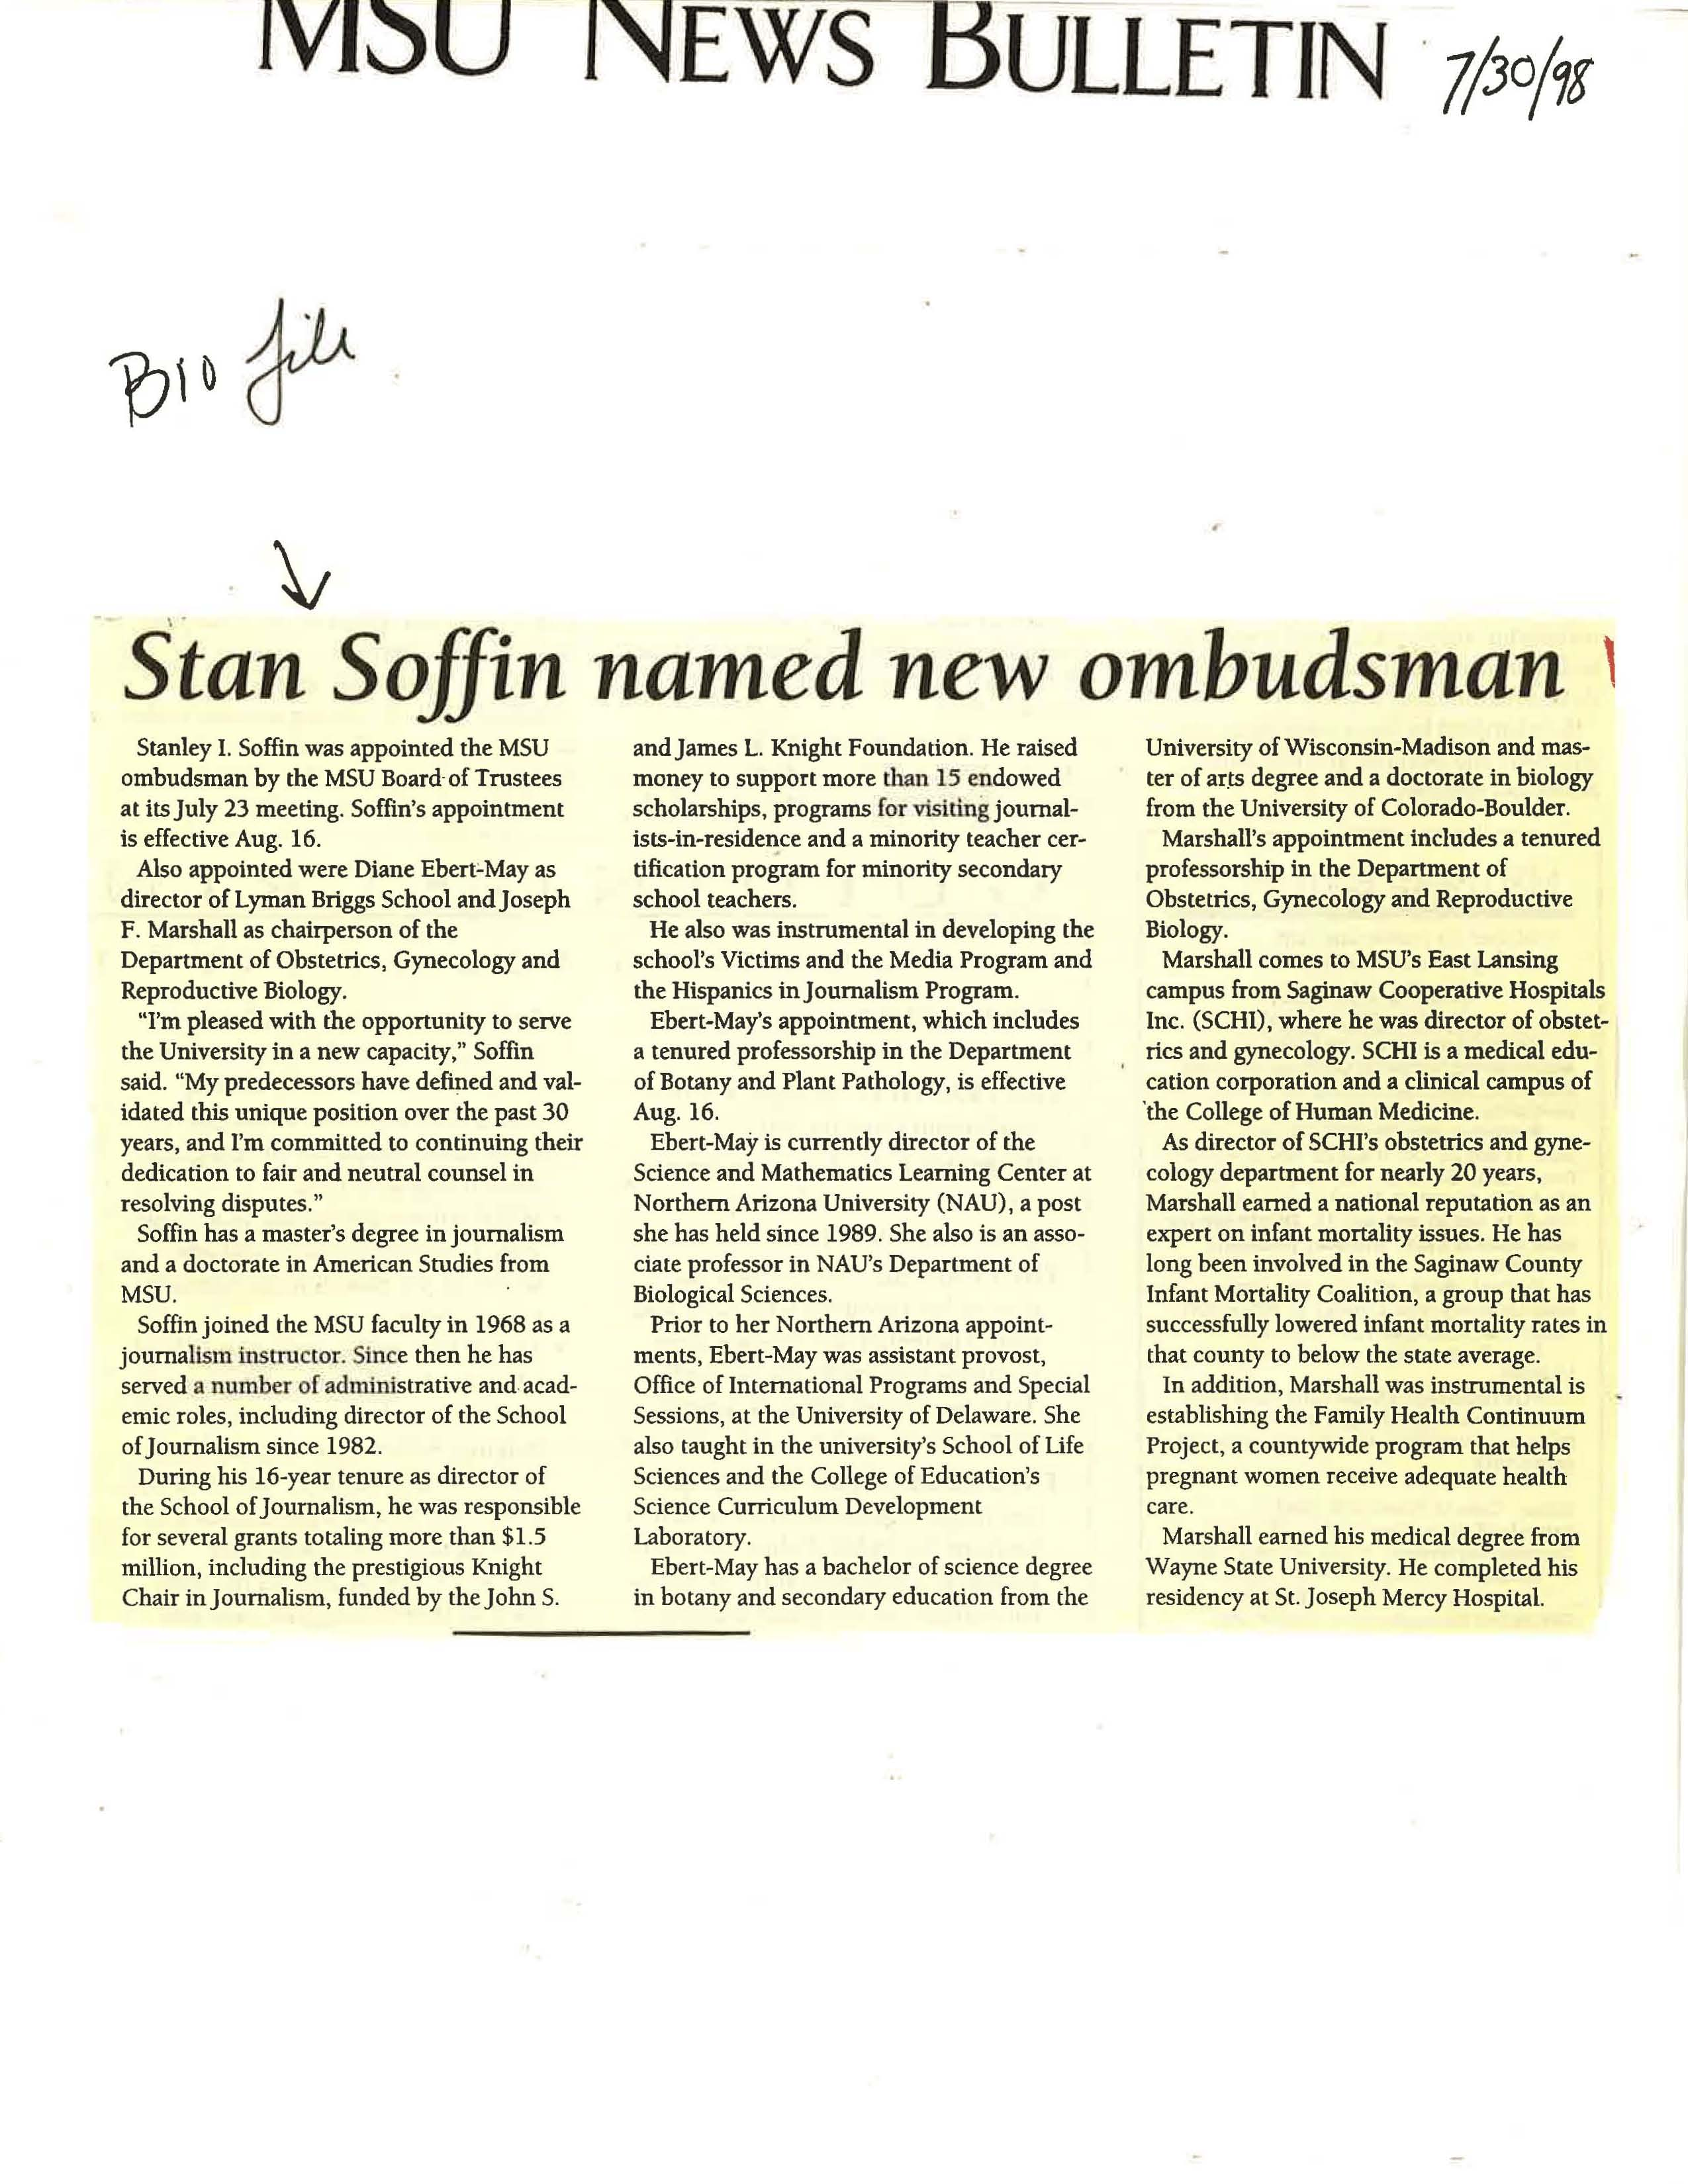 """Stan Soffin named new ombudsman,"" July 1998"